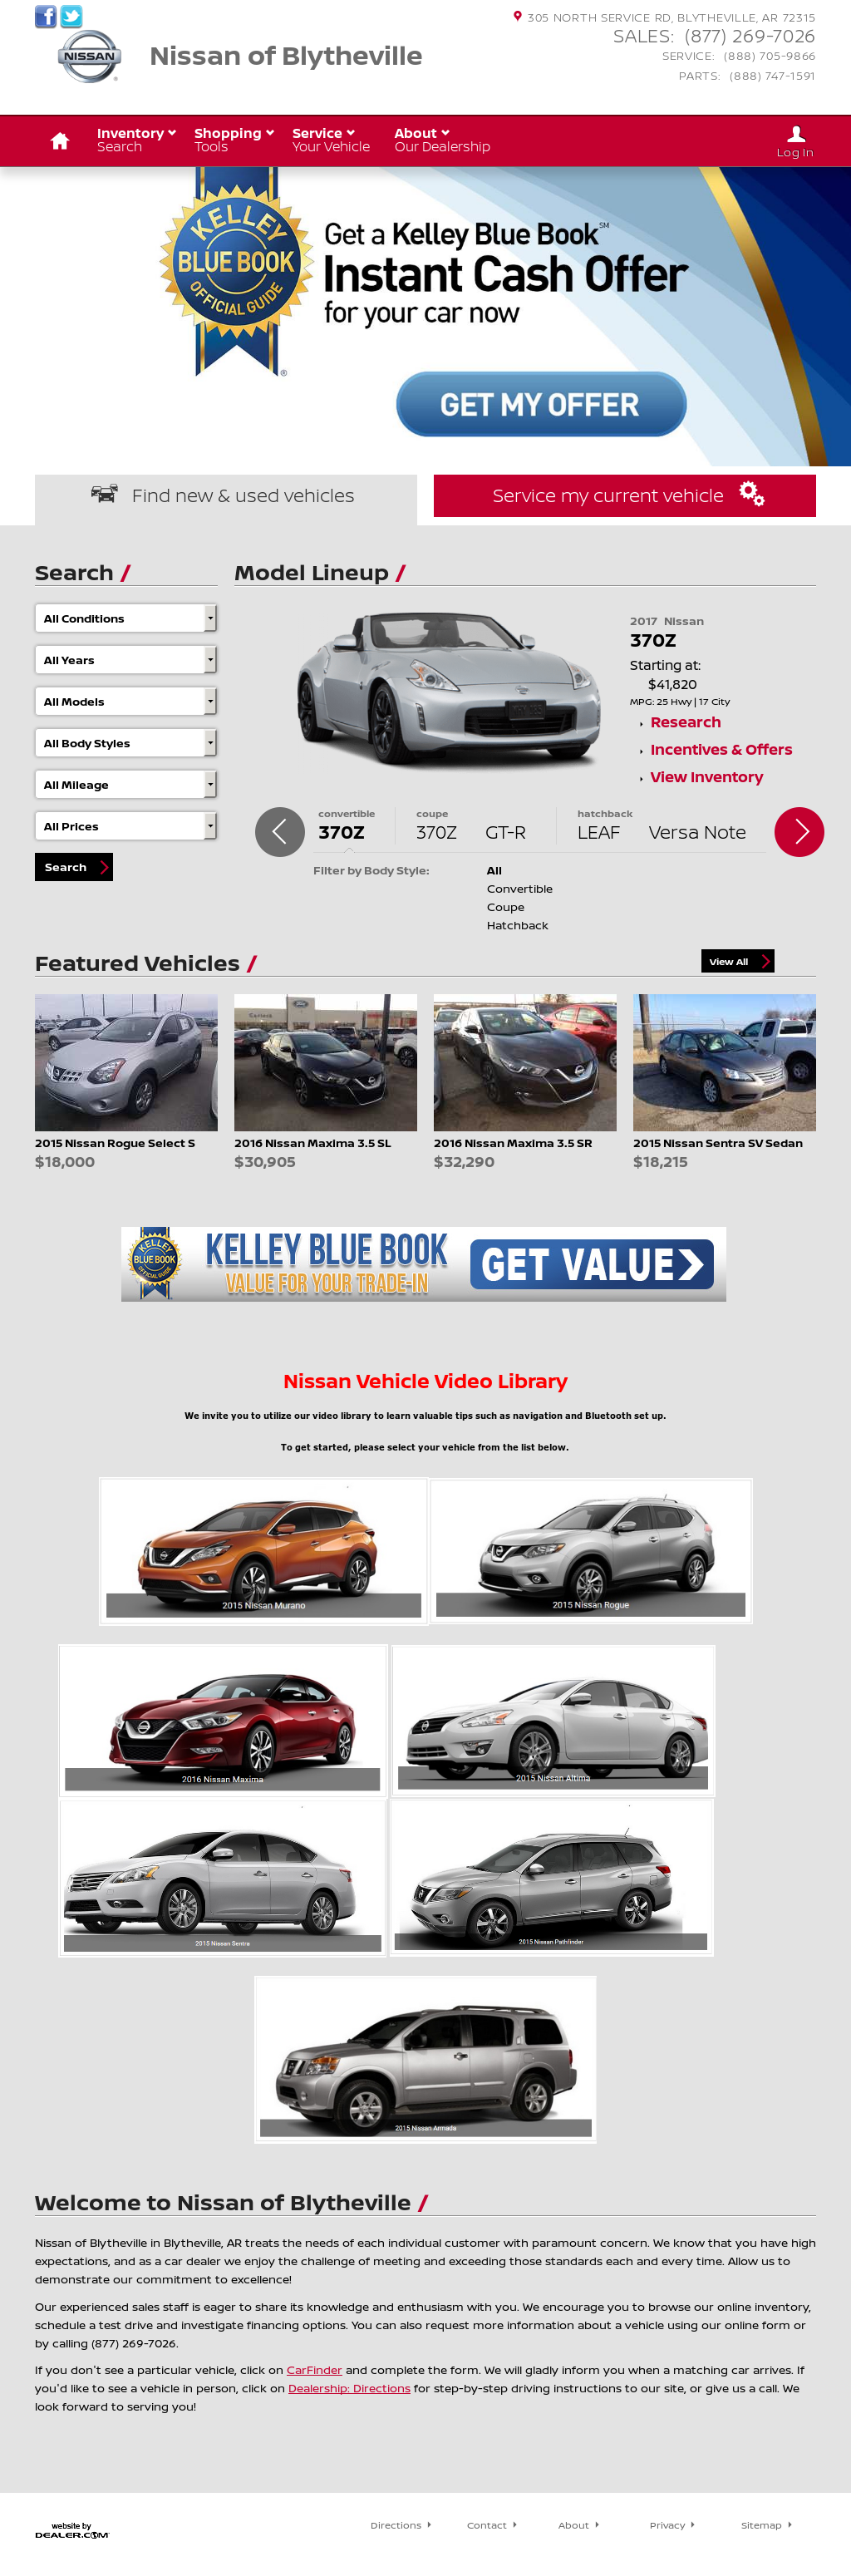 Exceptional Carlock Nissan Blytheville Website History